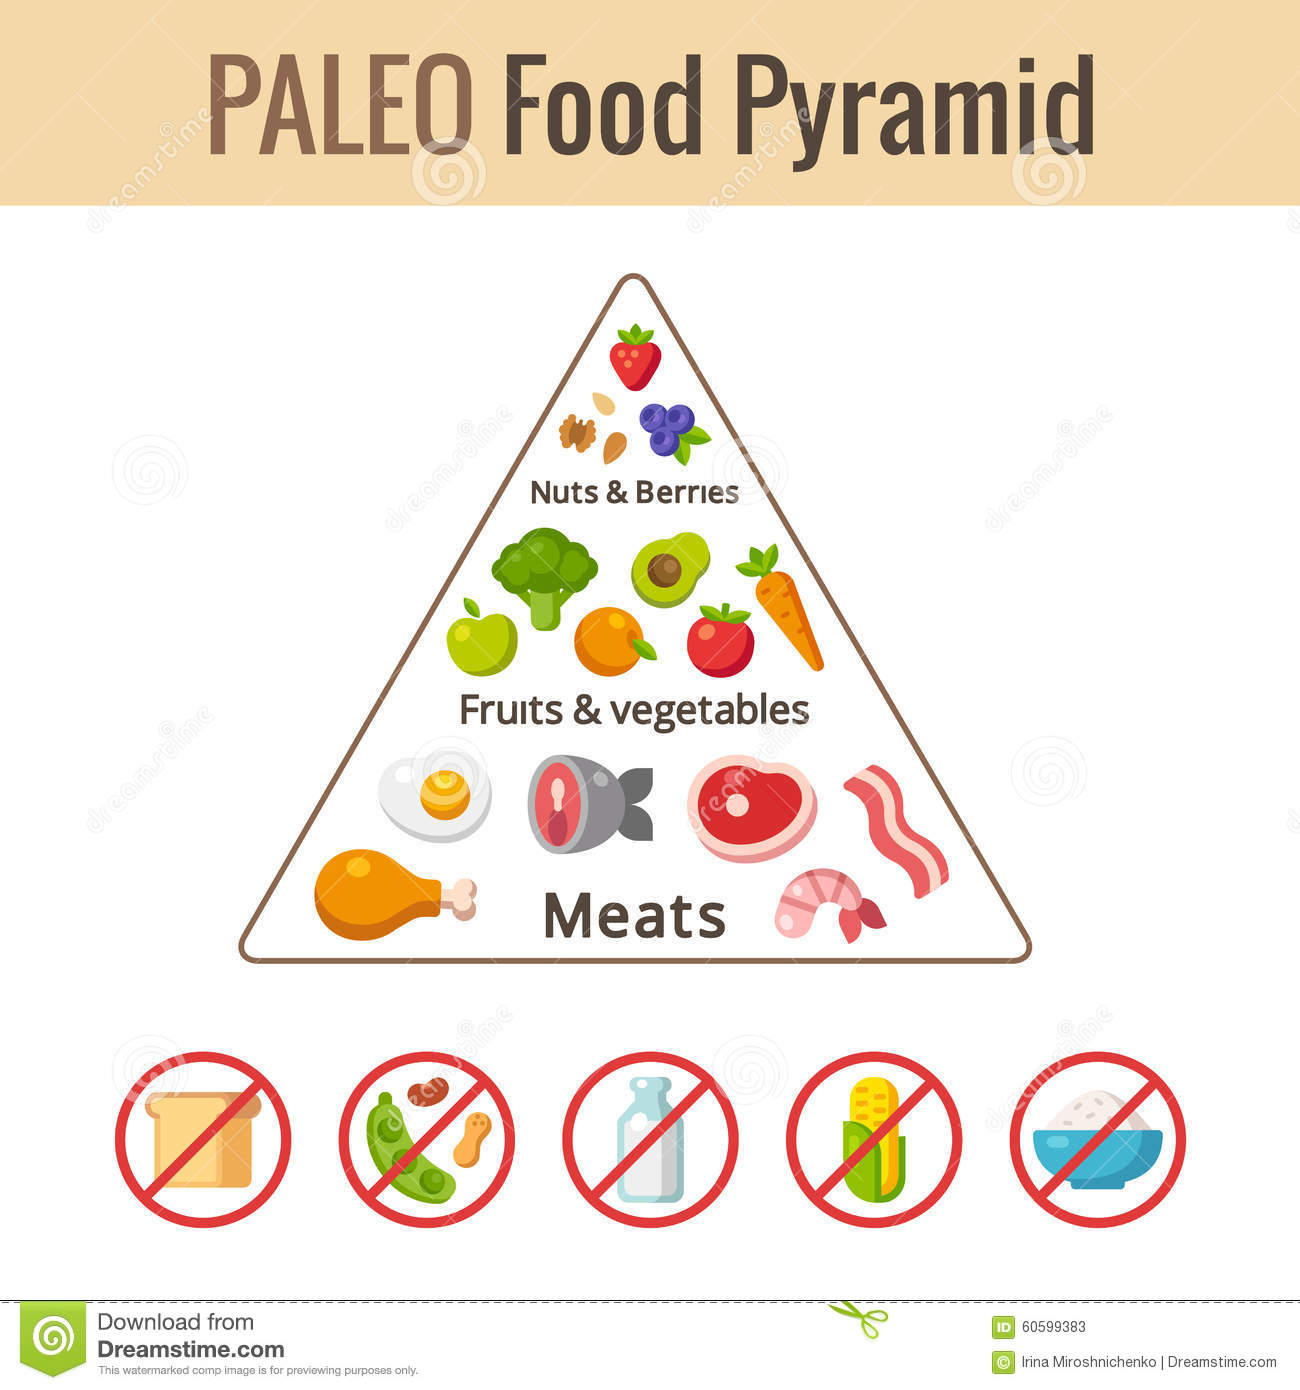 Paleo Food Pyramid Stock Vector - Image: 60599383